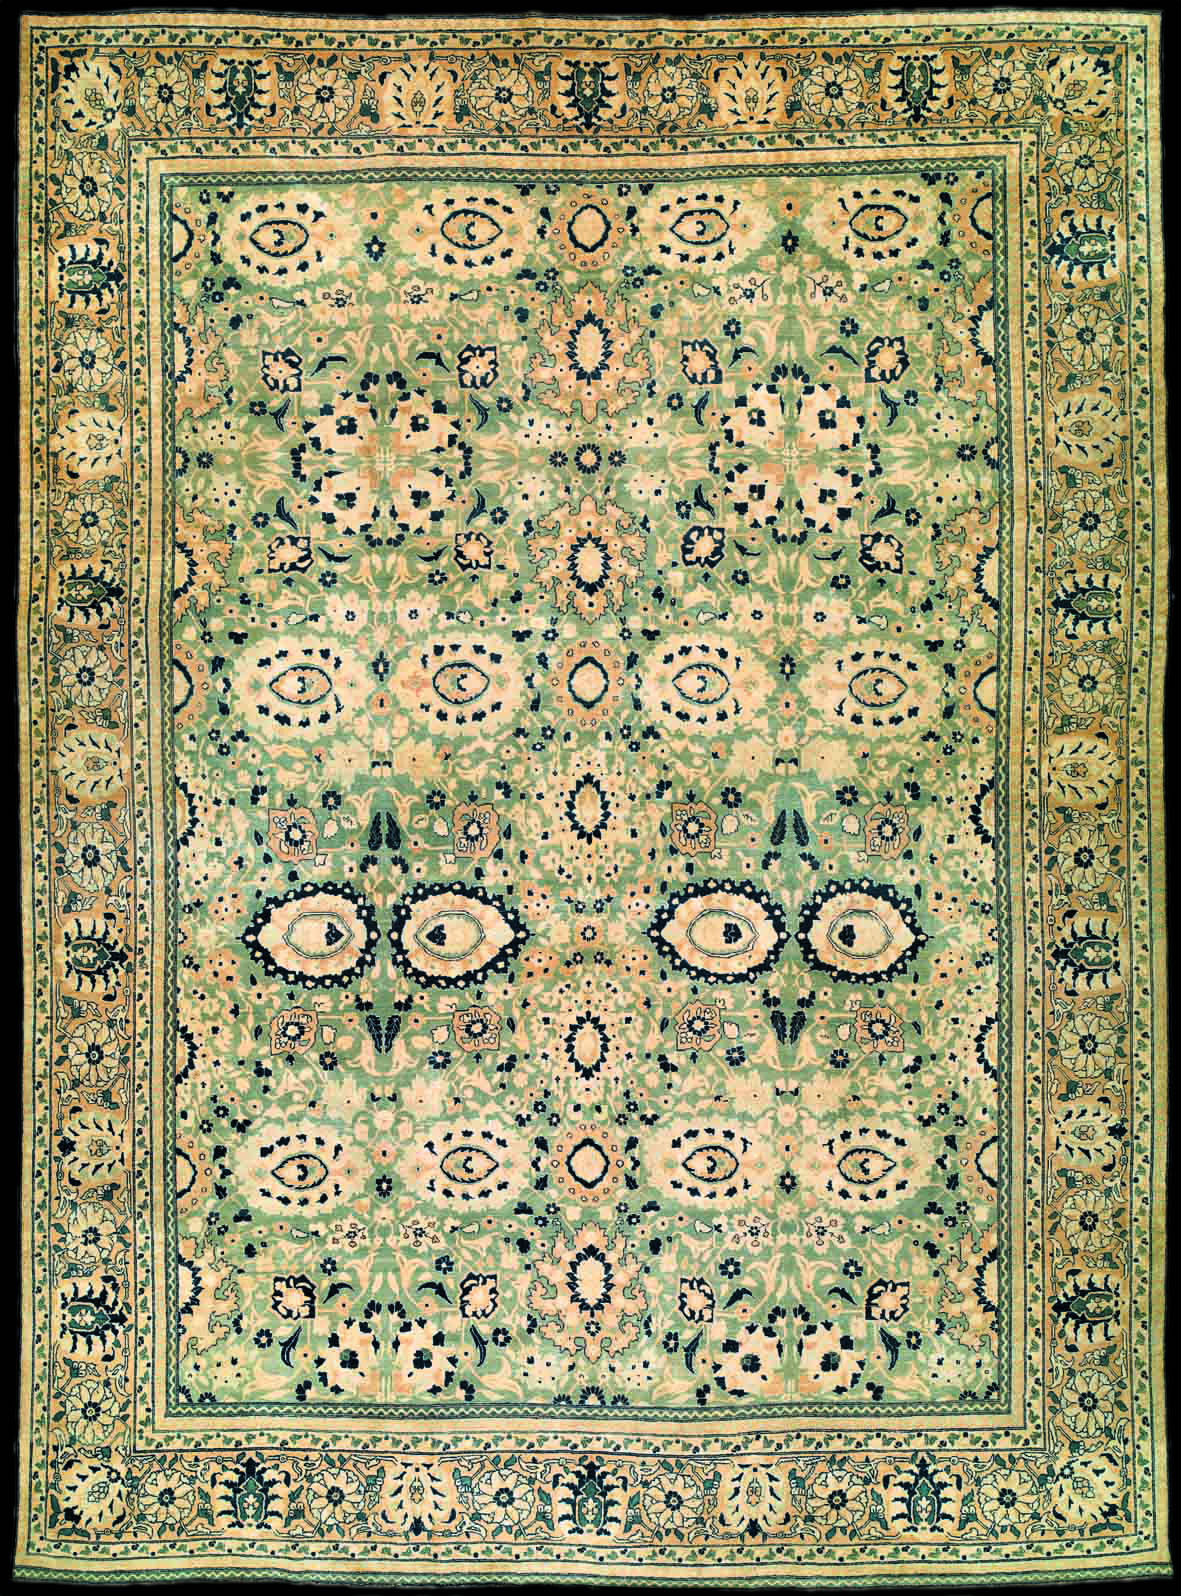 Antique Tabriz Persian Rug With The Moss Green Field